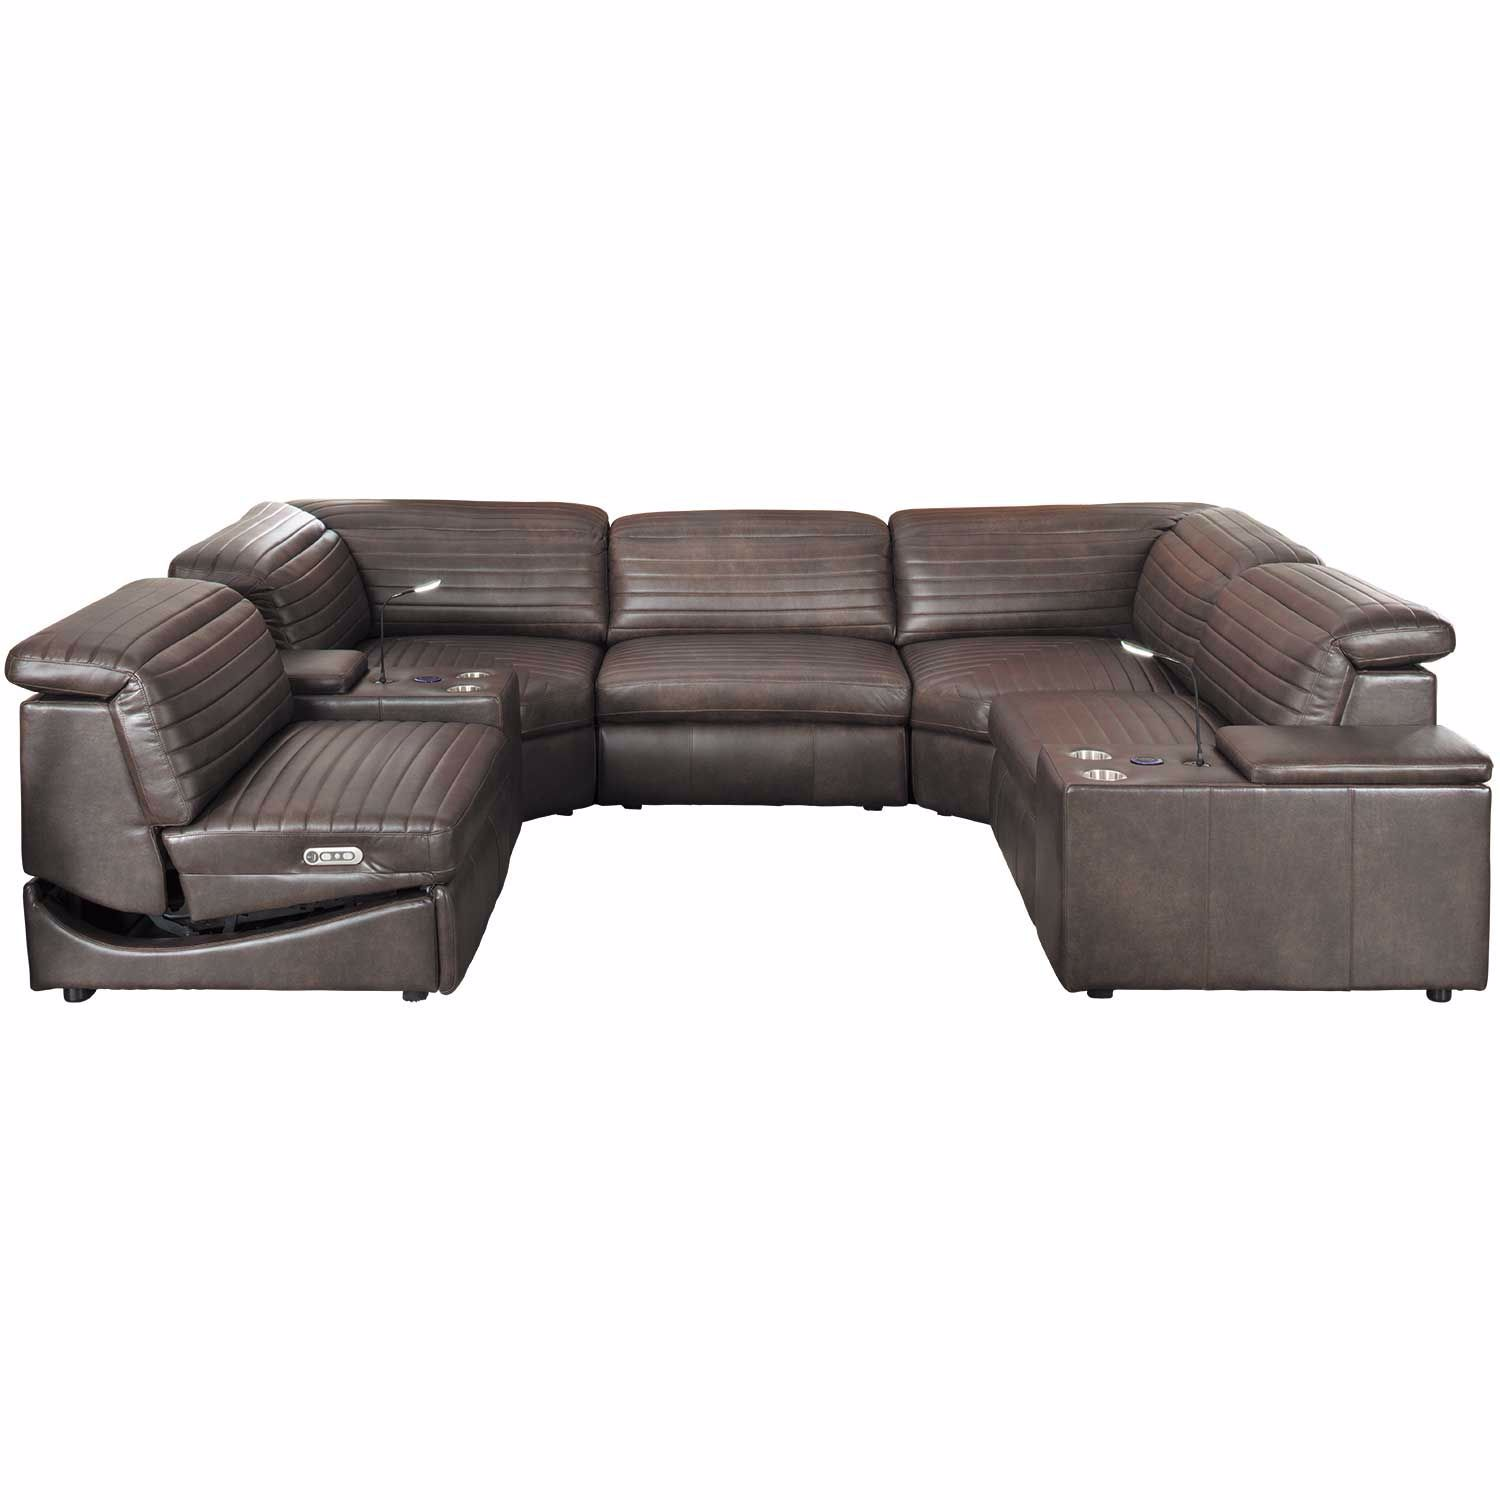 Pleasant Jett 7 Piece Leather Power Reclining Sectional Bralicious Painted Fabric Chair Ideas Braliciousco